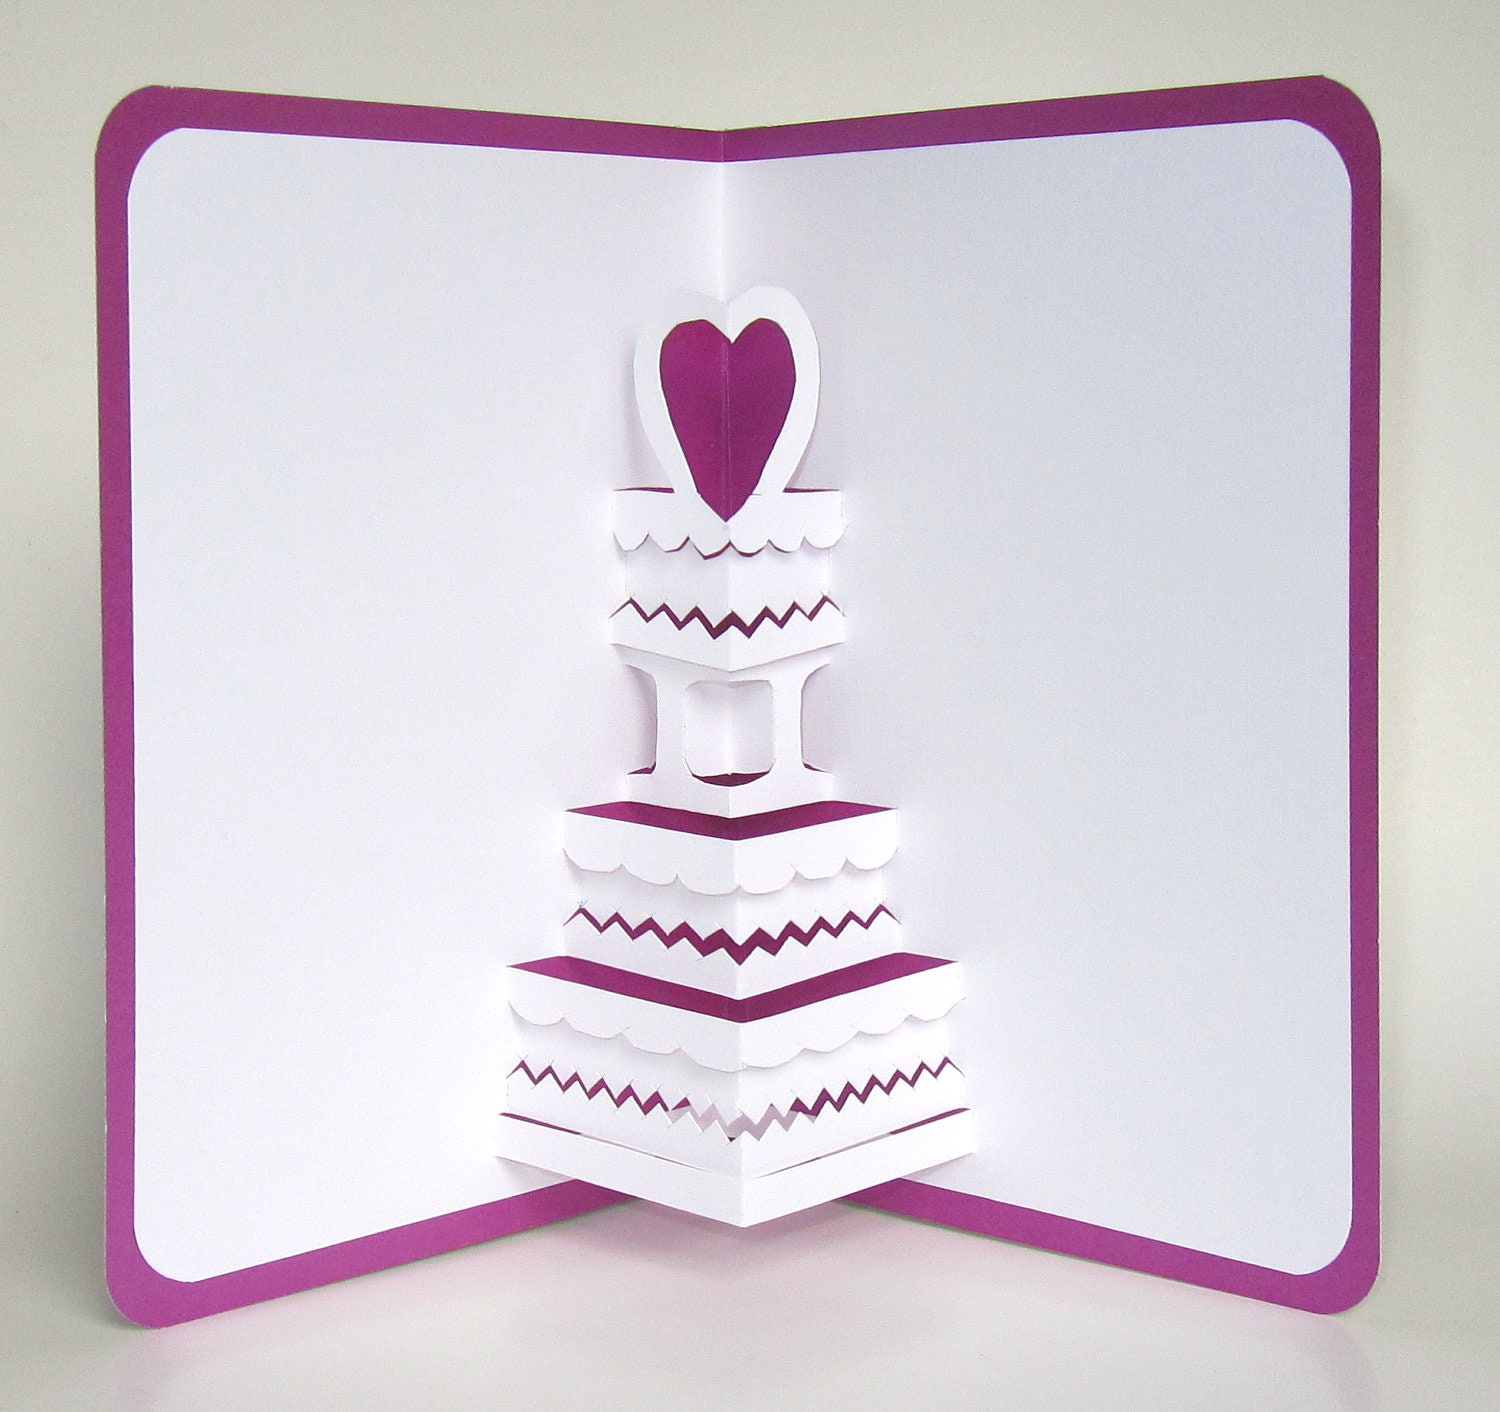 SAVE THE DATE Wedding Cake 3D Pop Up Greeting Card Valentines – Pop Up Birthday Card Templates